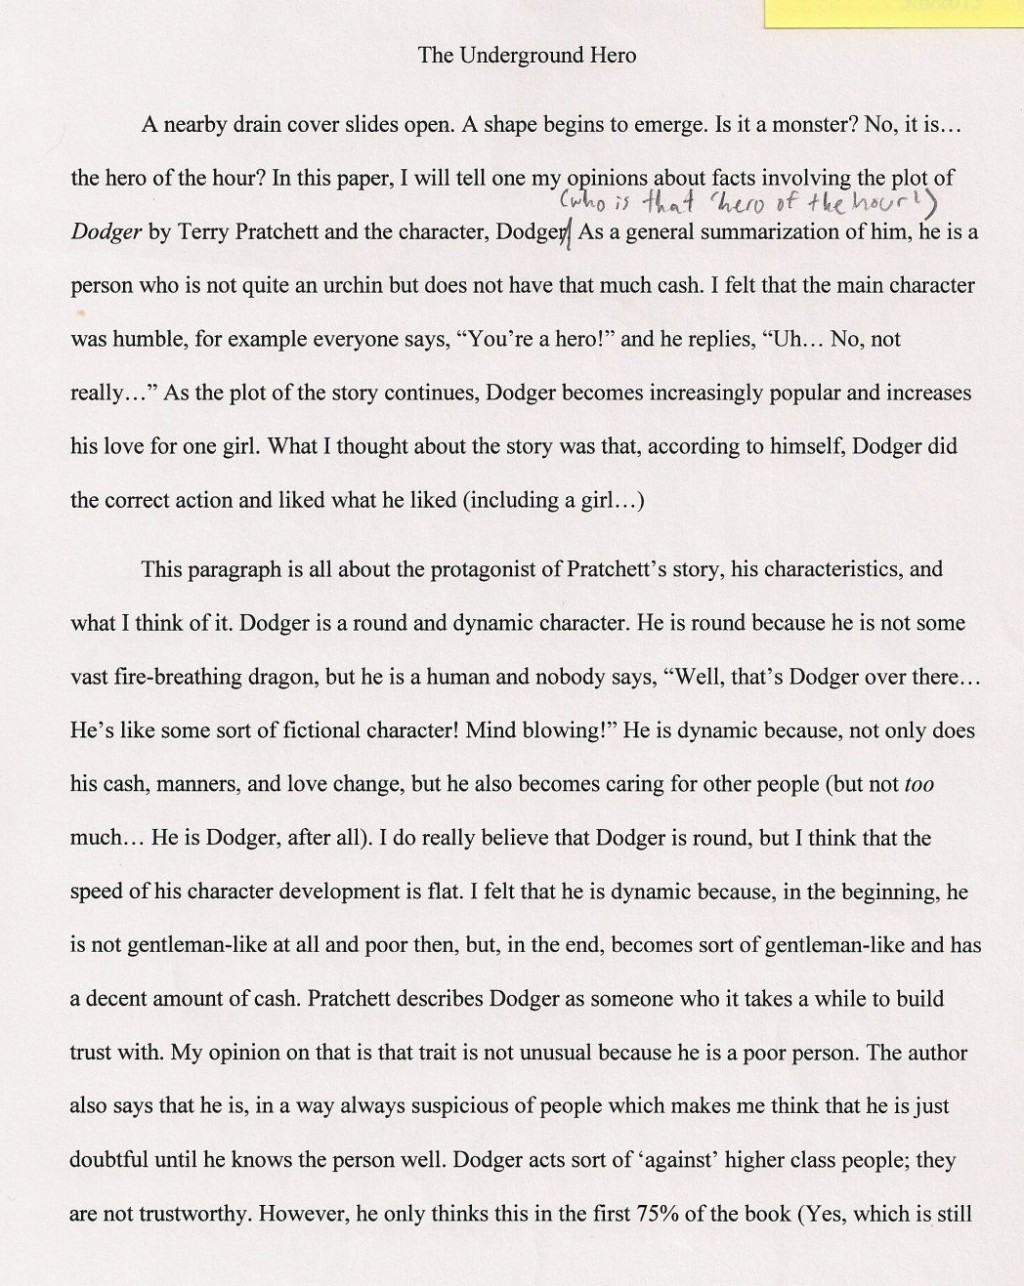 013 An Essay About My Hero Essays On Heroess Good Writing What To Write Argumentative The Undergro Should I 1048x1317 Fascinating Heroine Teacher 500 Words A Narrative Large